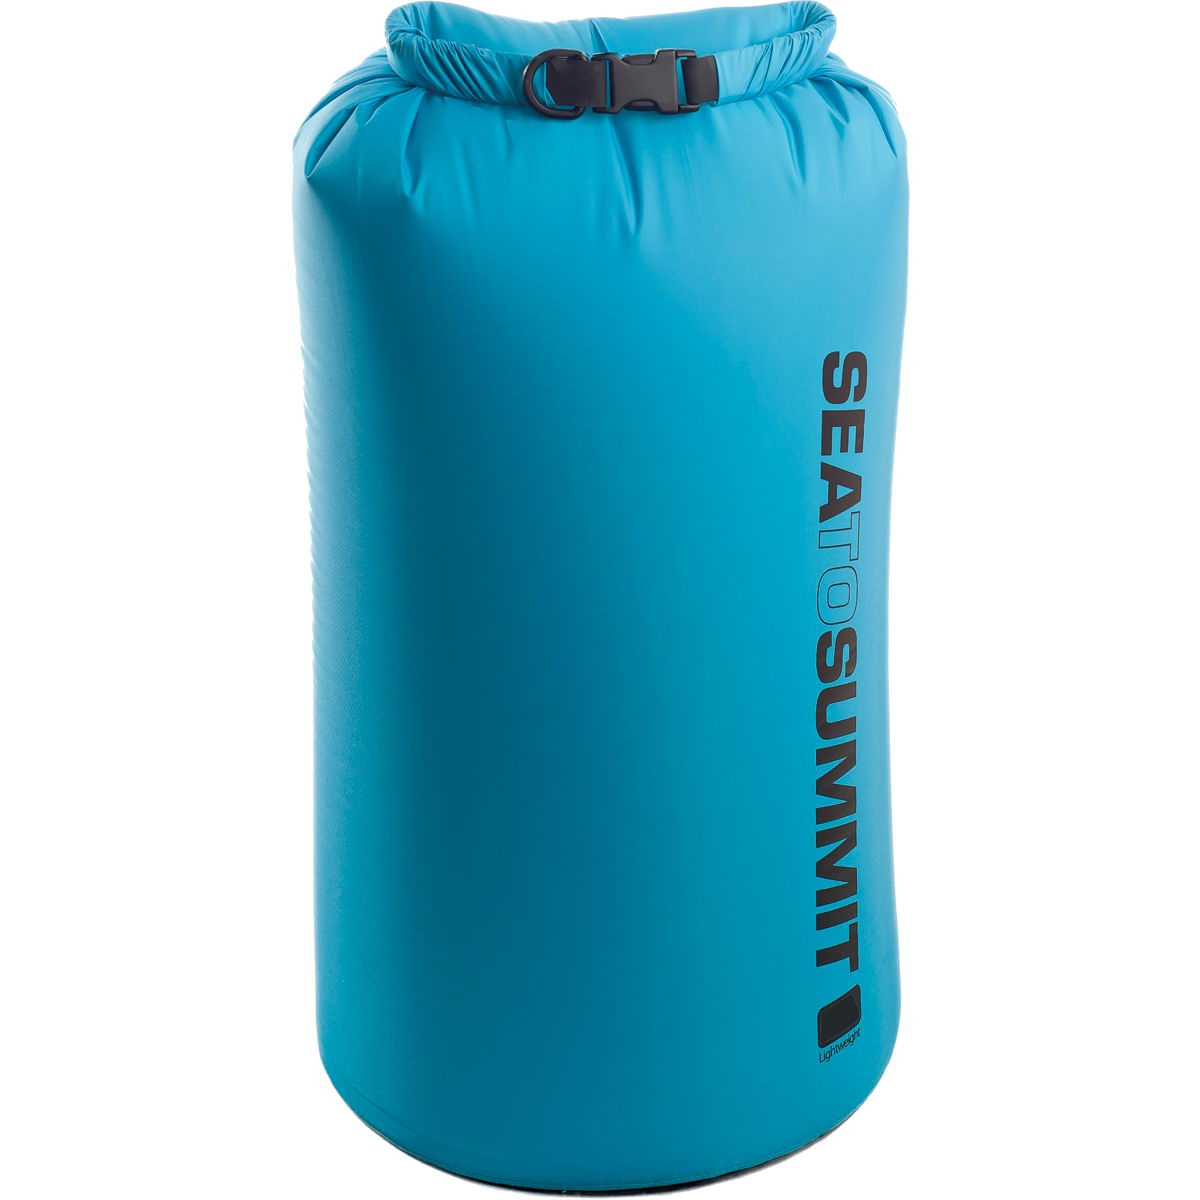 Sac impermeabil Lightweight Dry Sack Sea To Summit 35L - Albastru